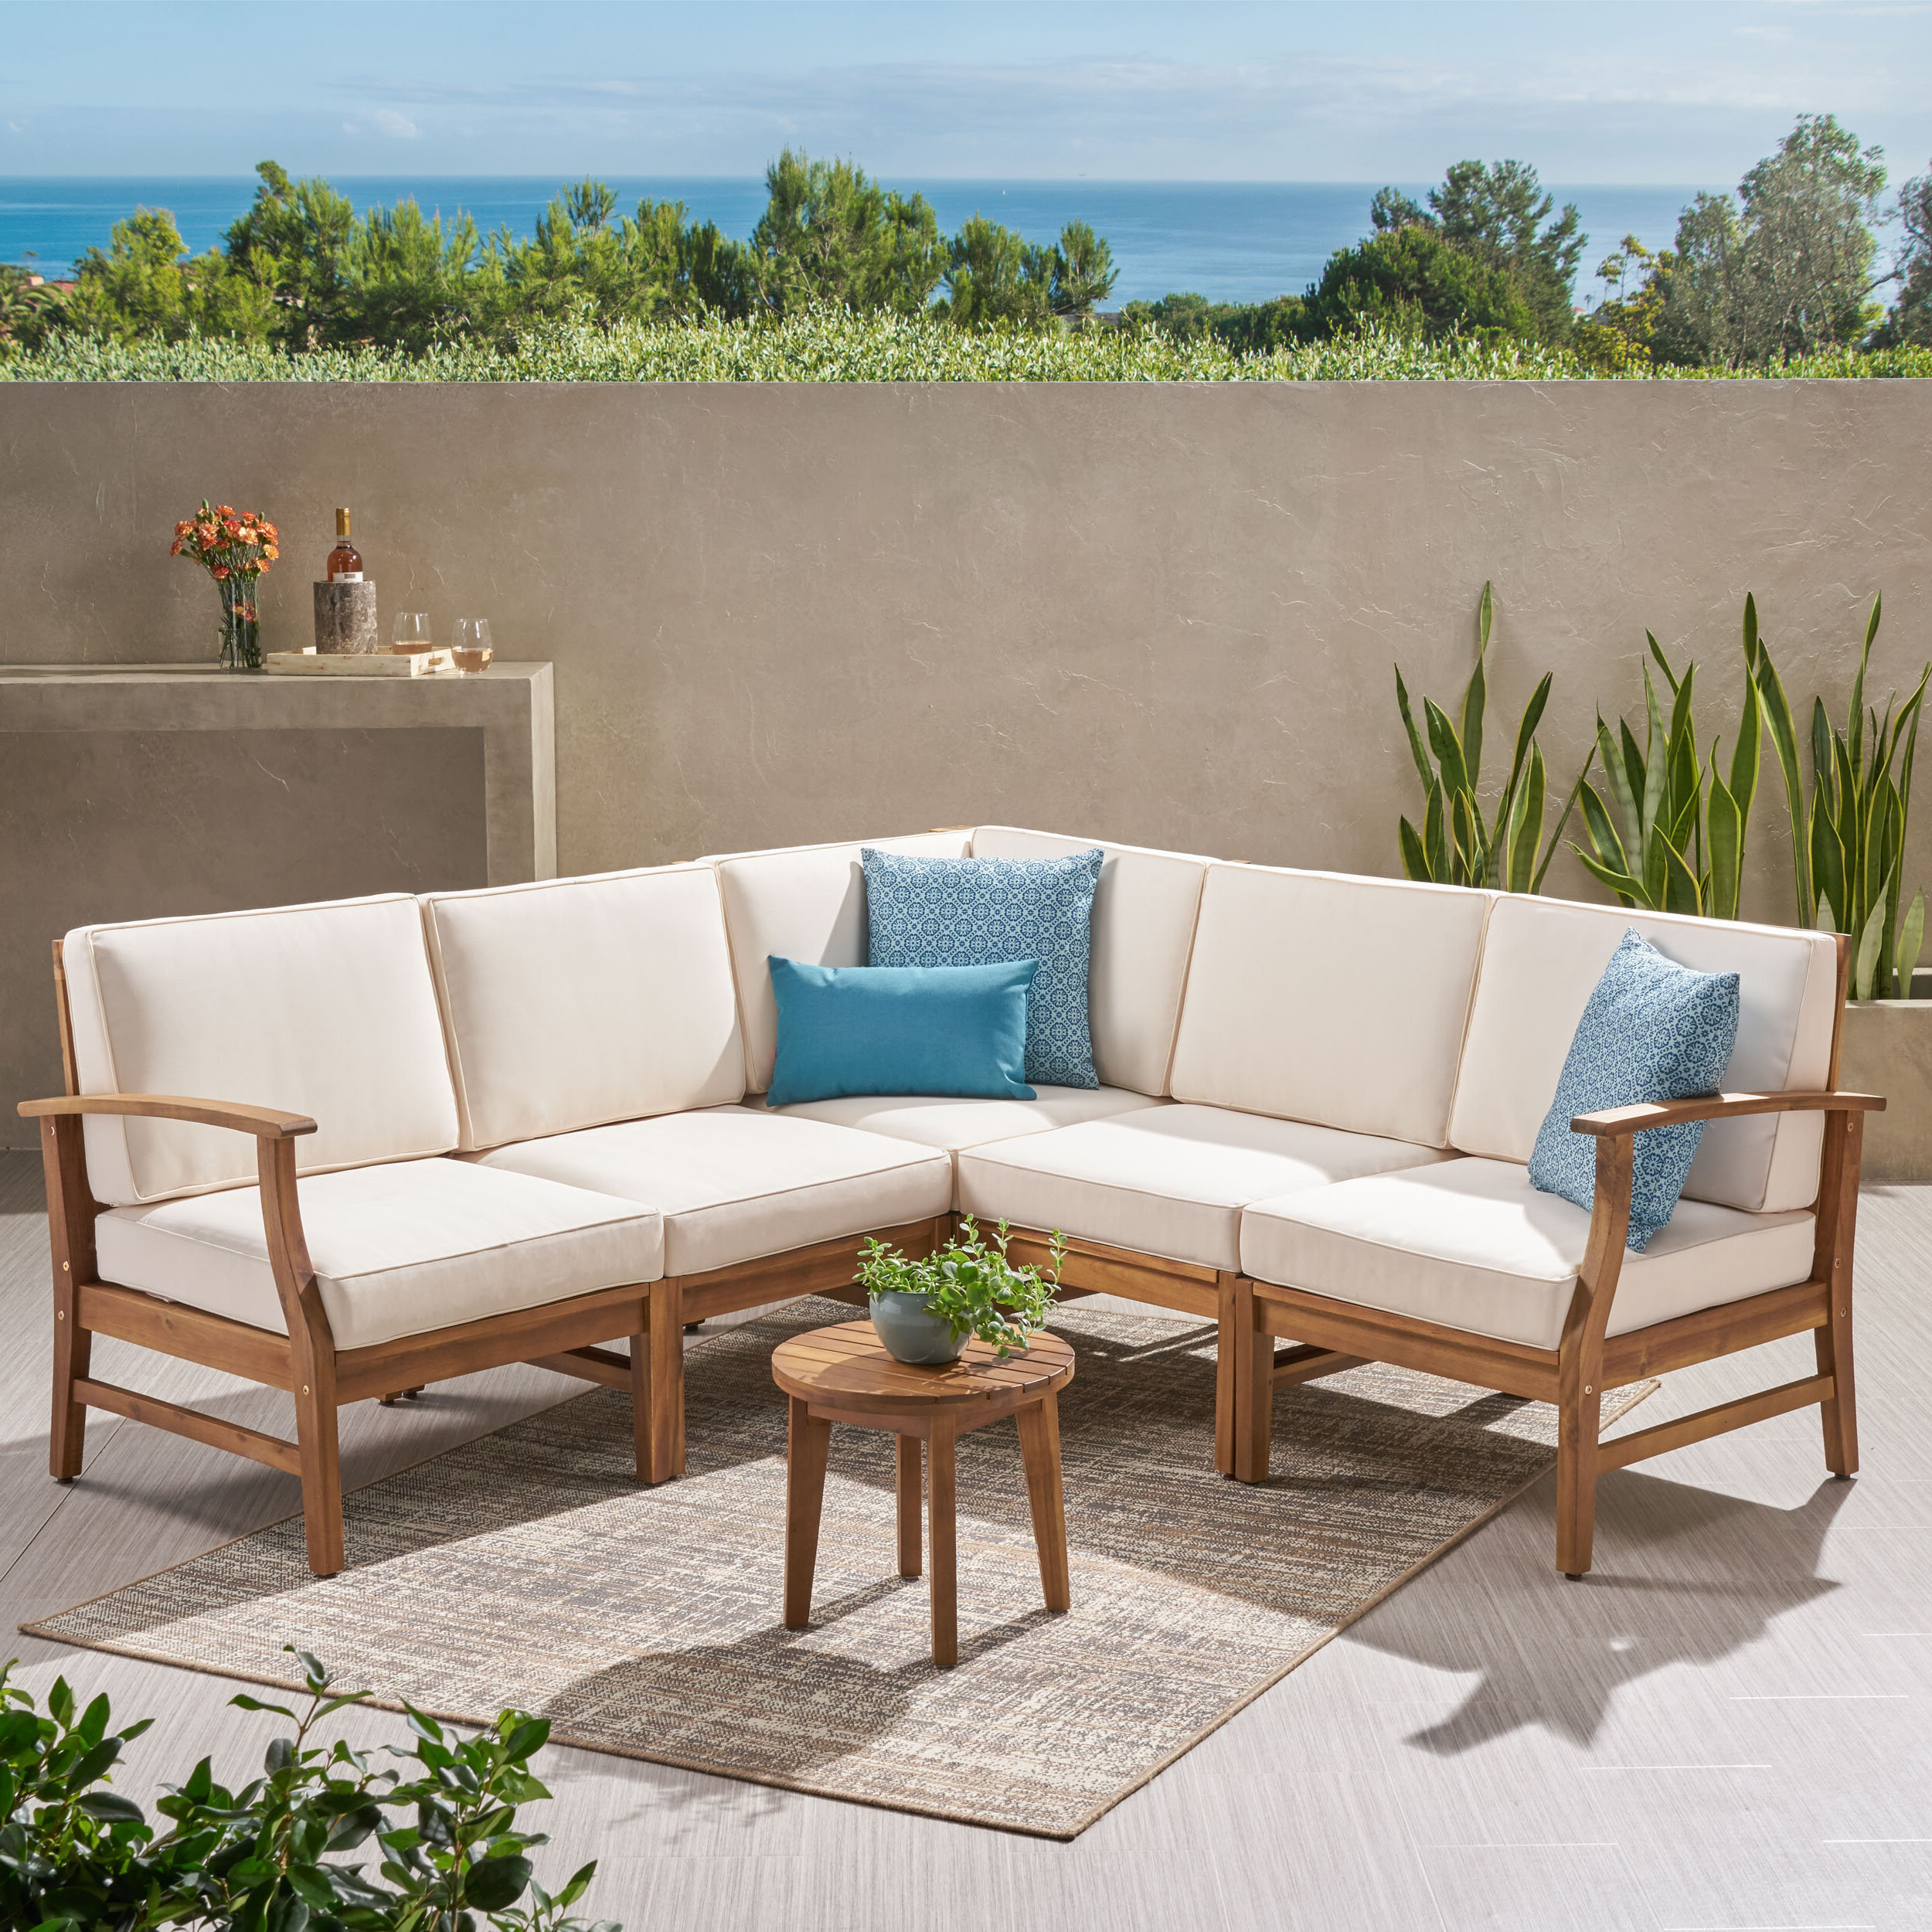 Antonia Teak Patio Sectionals With Cushions With Trendy Antonia Teak Patio Sectional With Cushions (View 10 of 25)